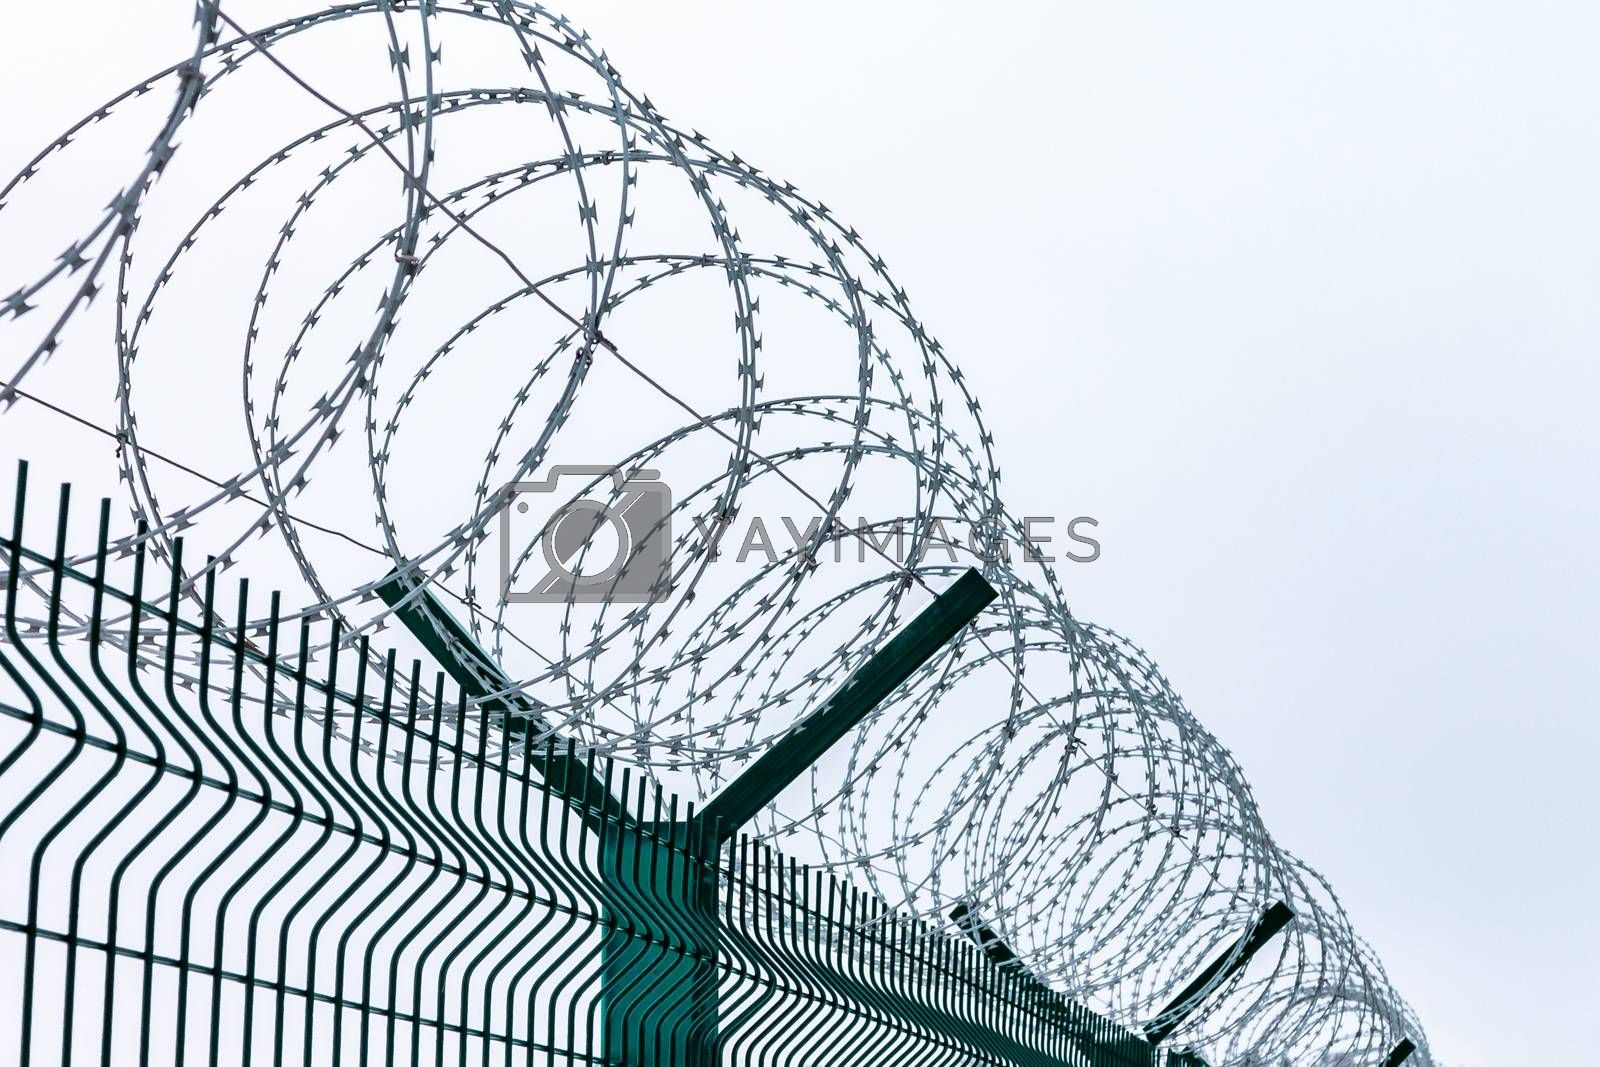 Metal fence with barbed wire on top against the sky by galsand